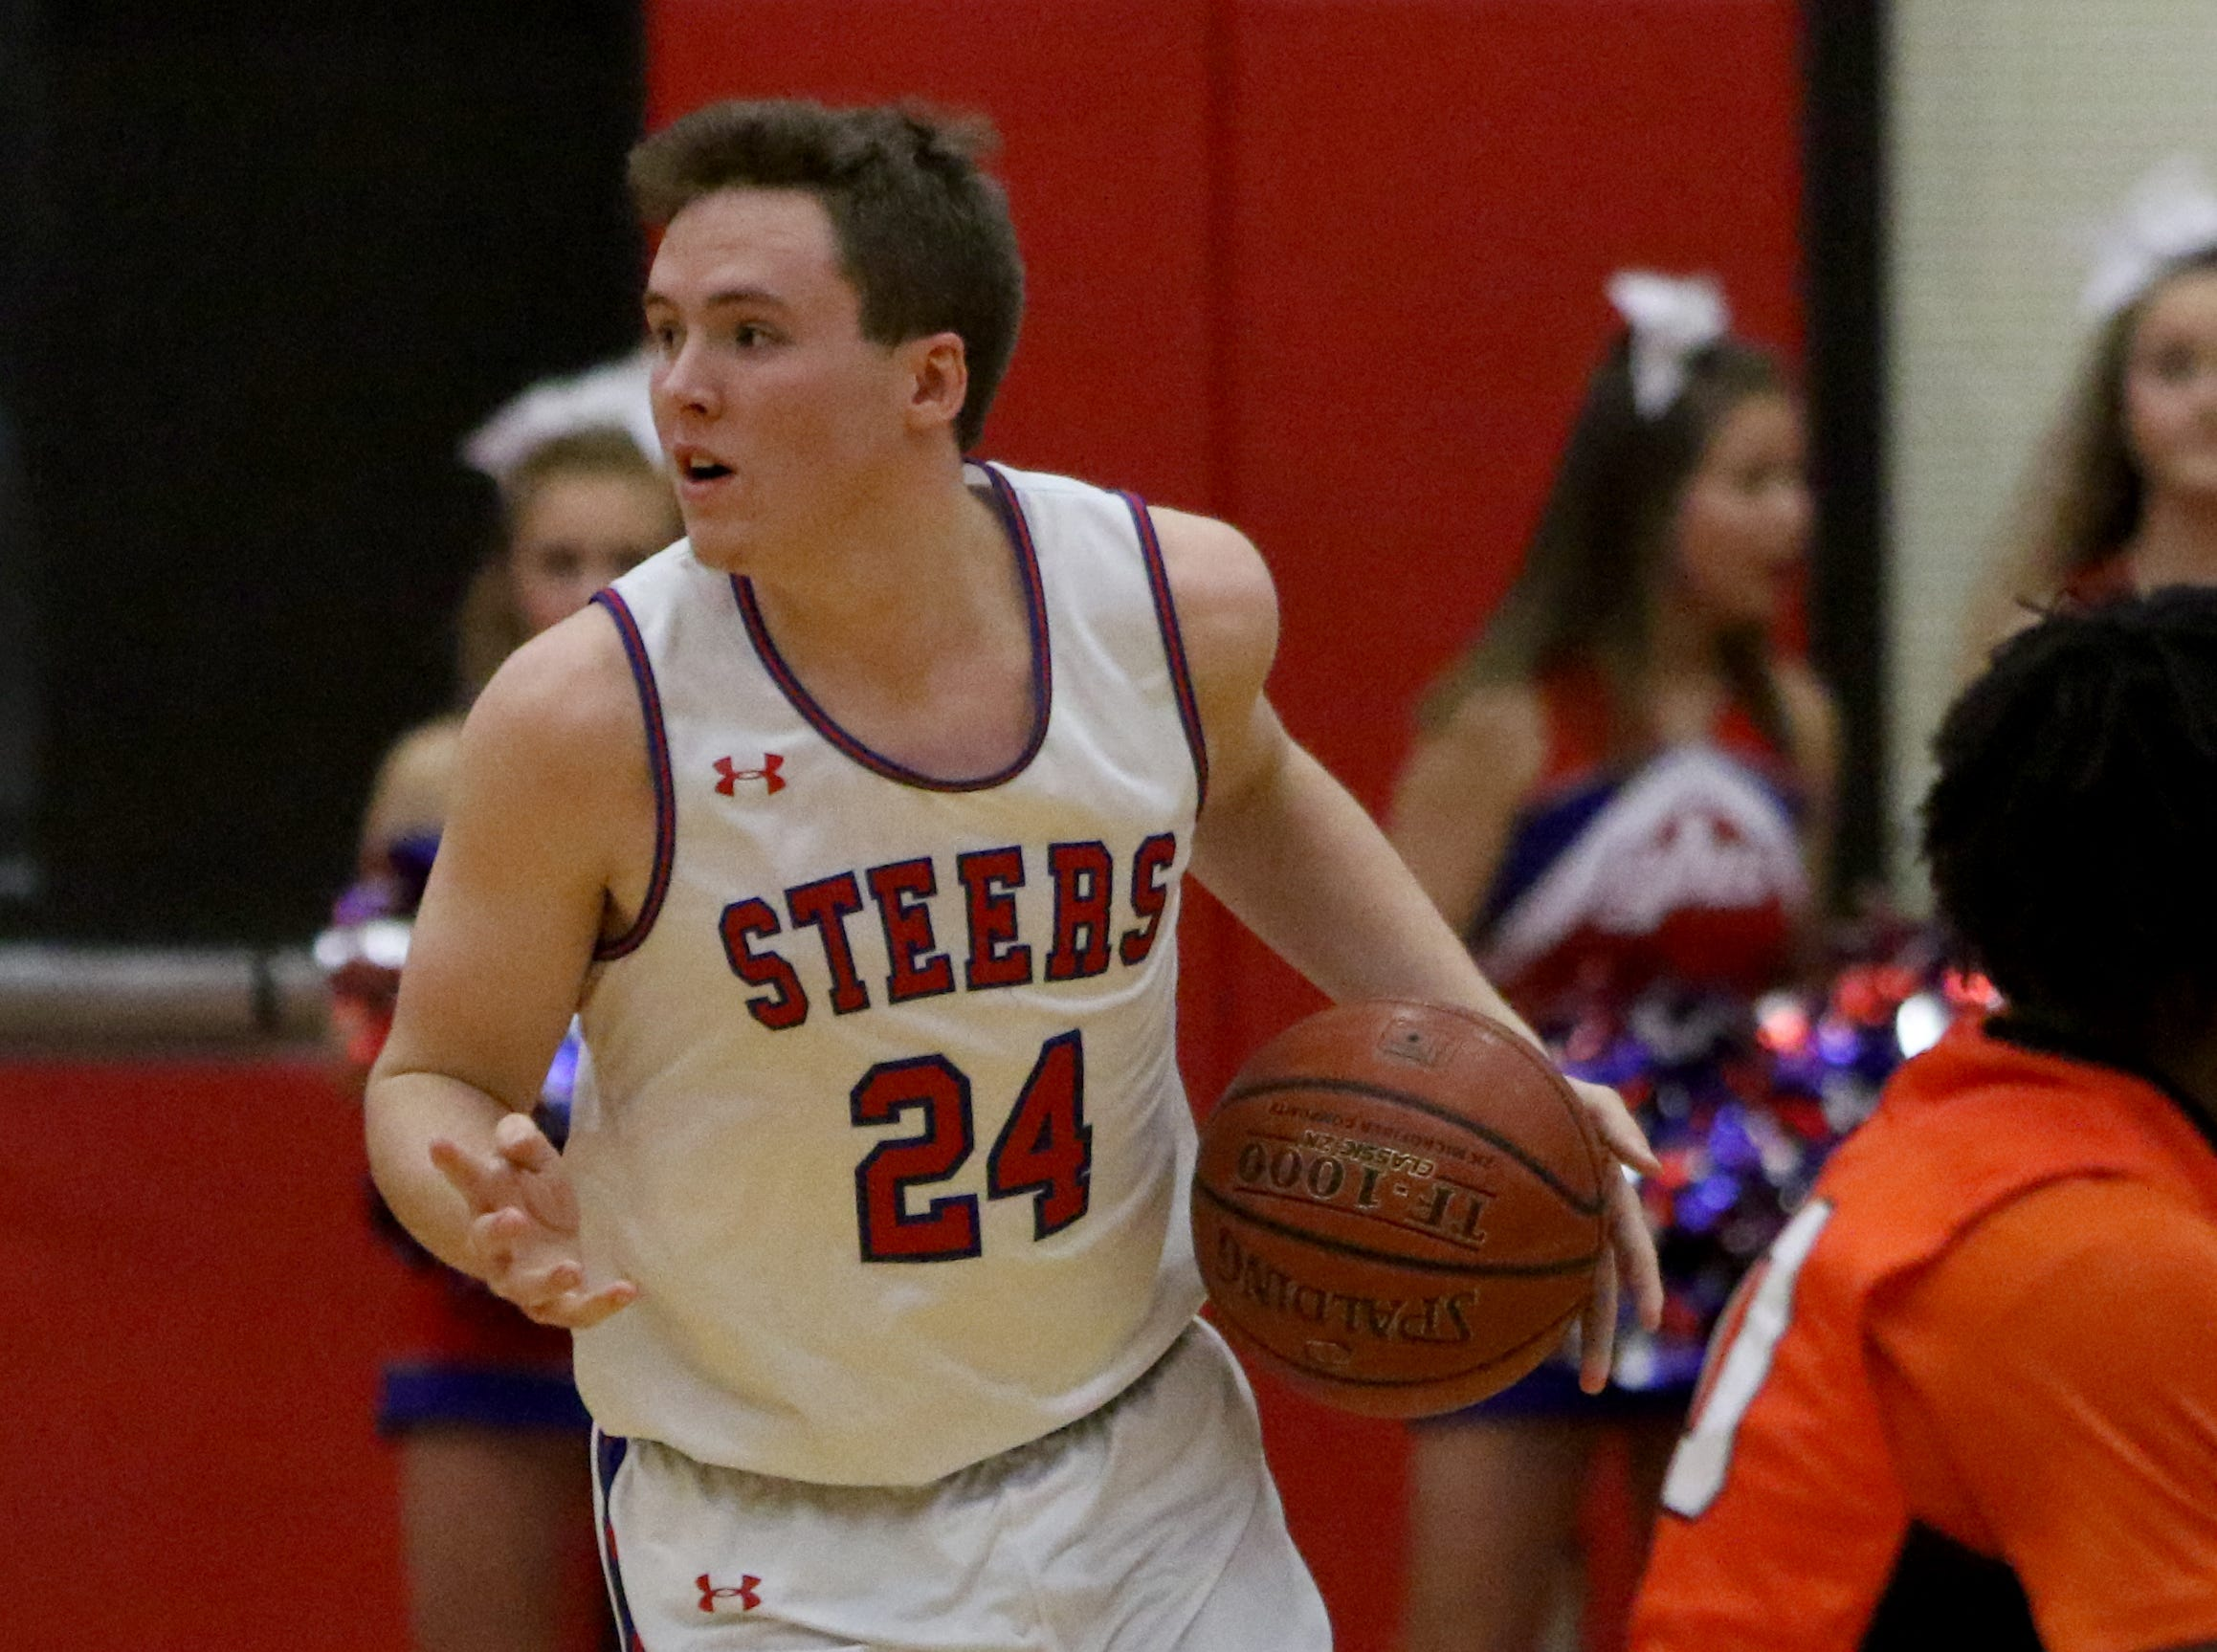 Graham's Marcus Brooks looks to the sideline in the game against Burkburnett Friday, Feb. 8, 2019, in Graham. The Steers defeated the Bulldogs 75-70.